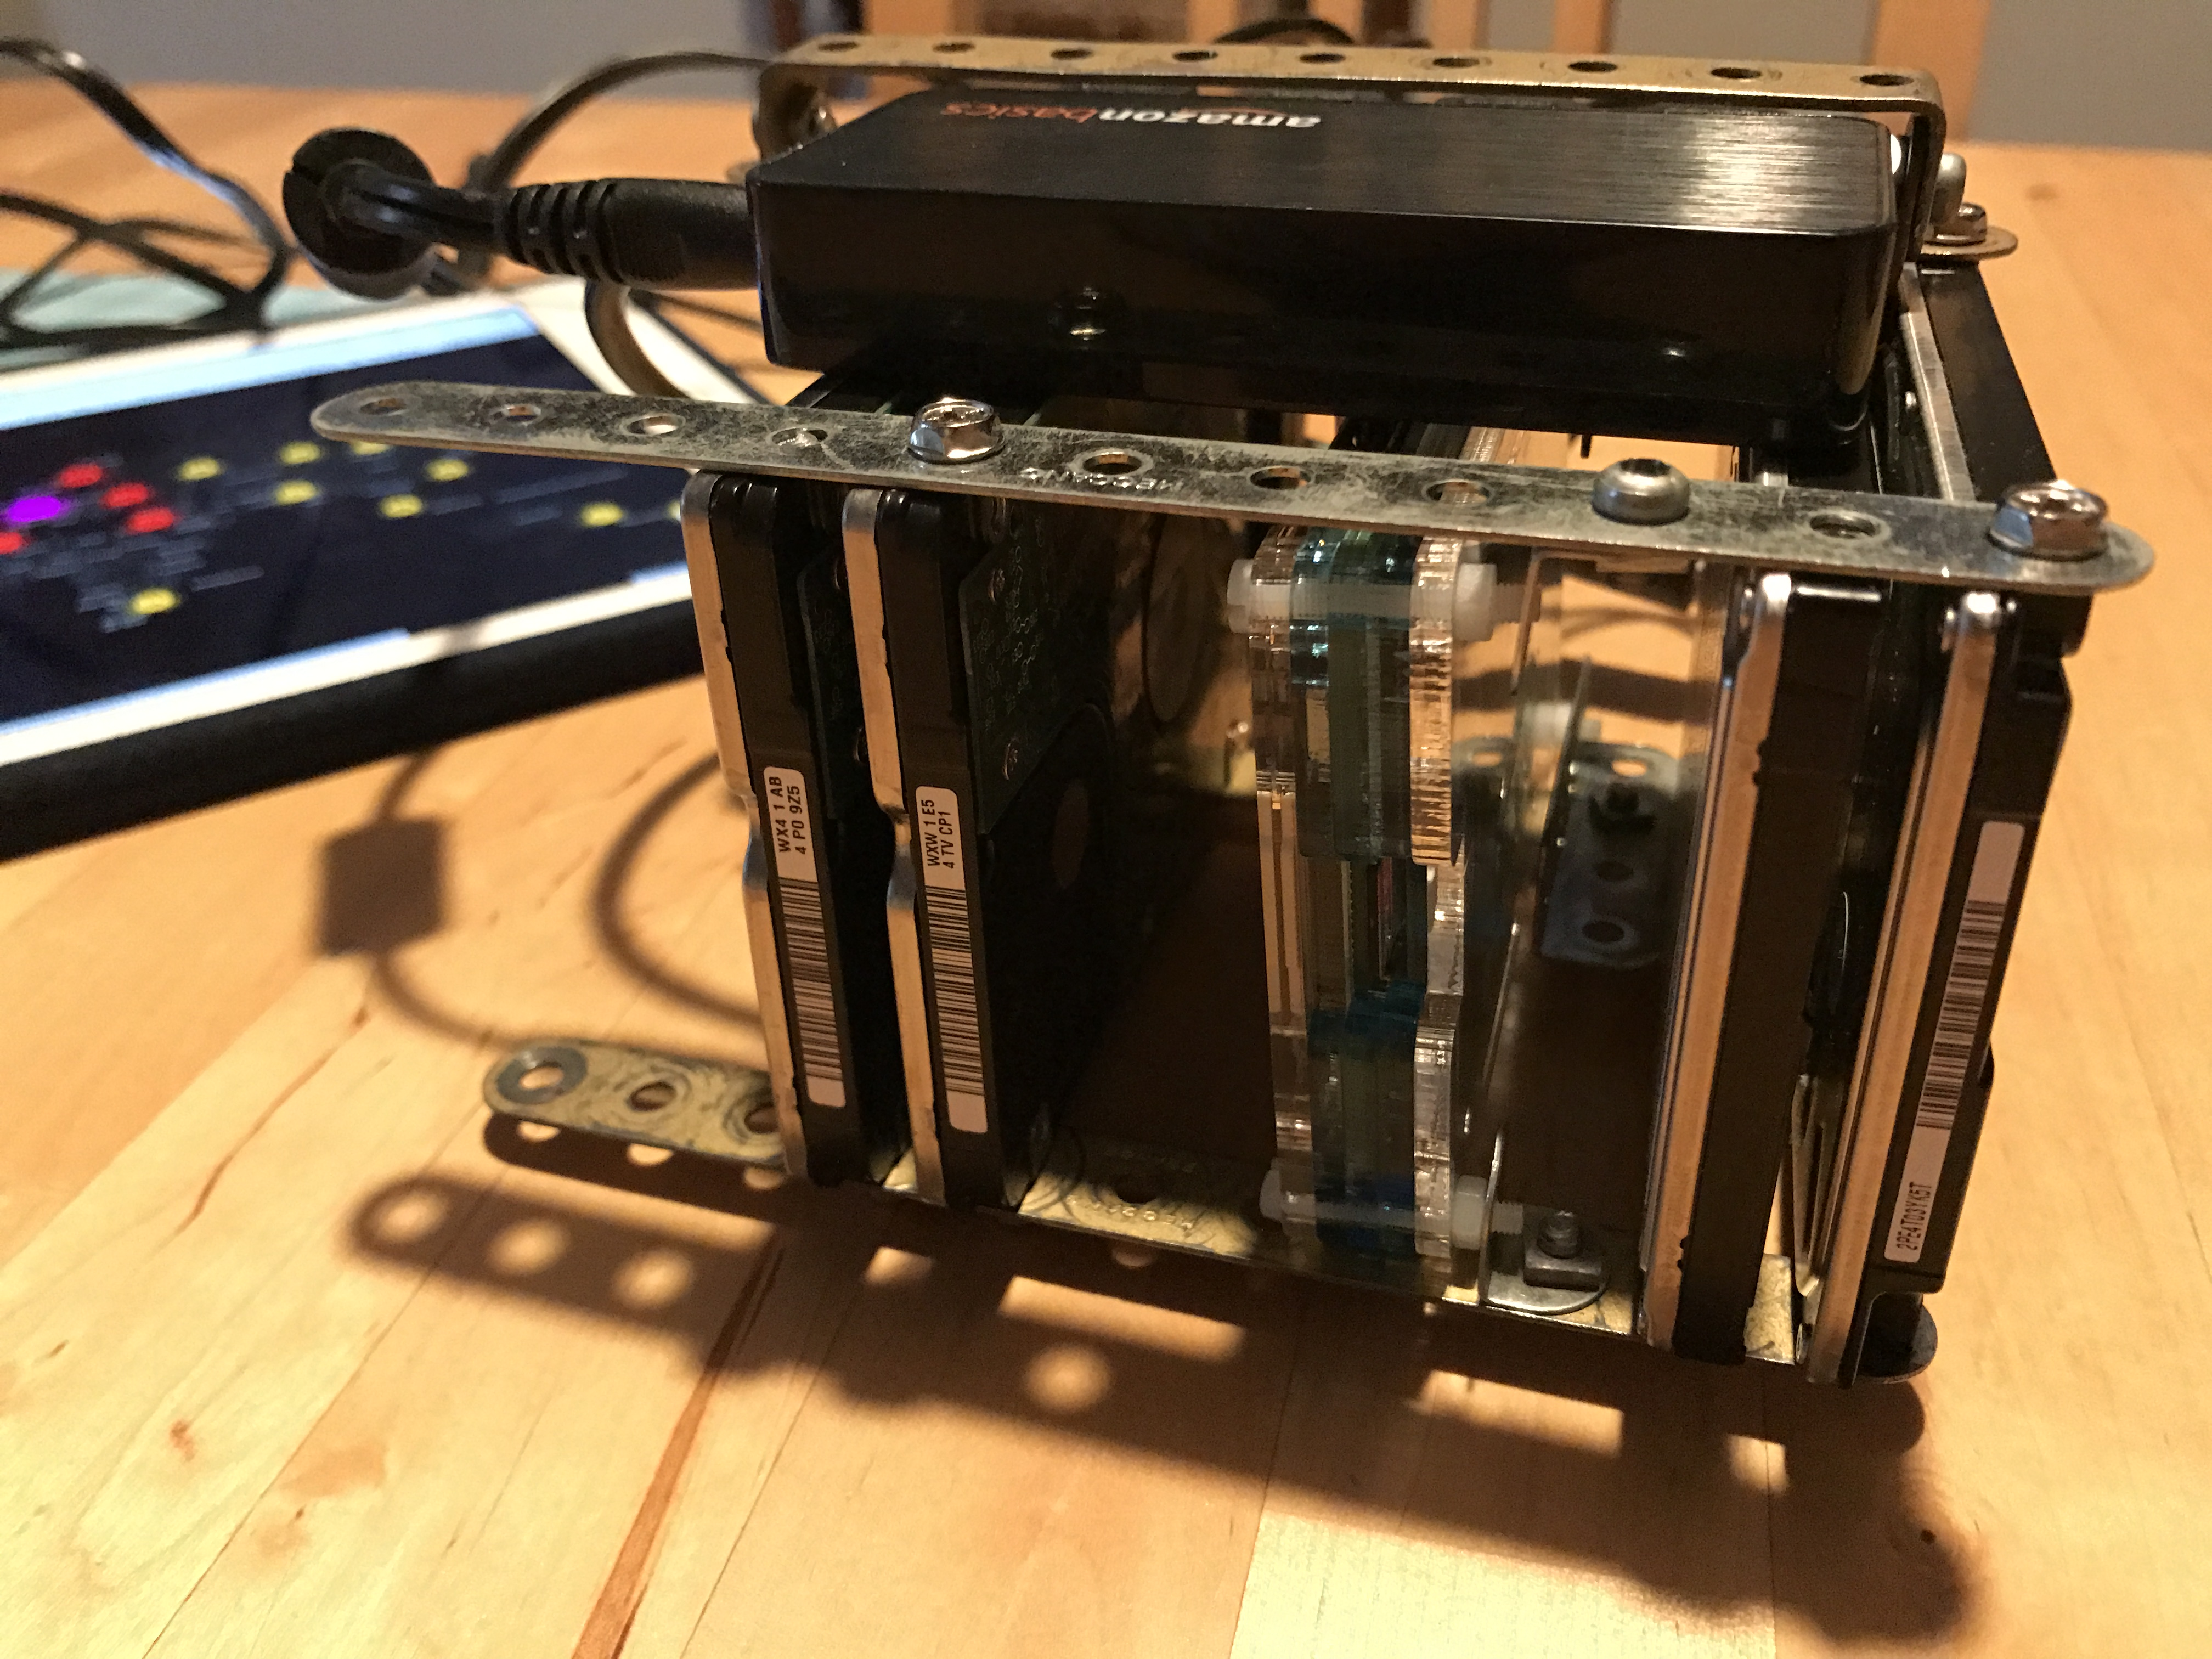 Raspberry Pi Archives Olivier Balais Node Wiringpi Build Your Own Storjio Farming With And Meccano